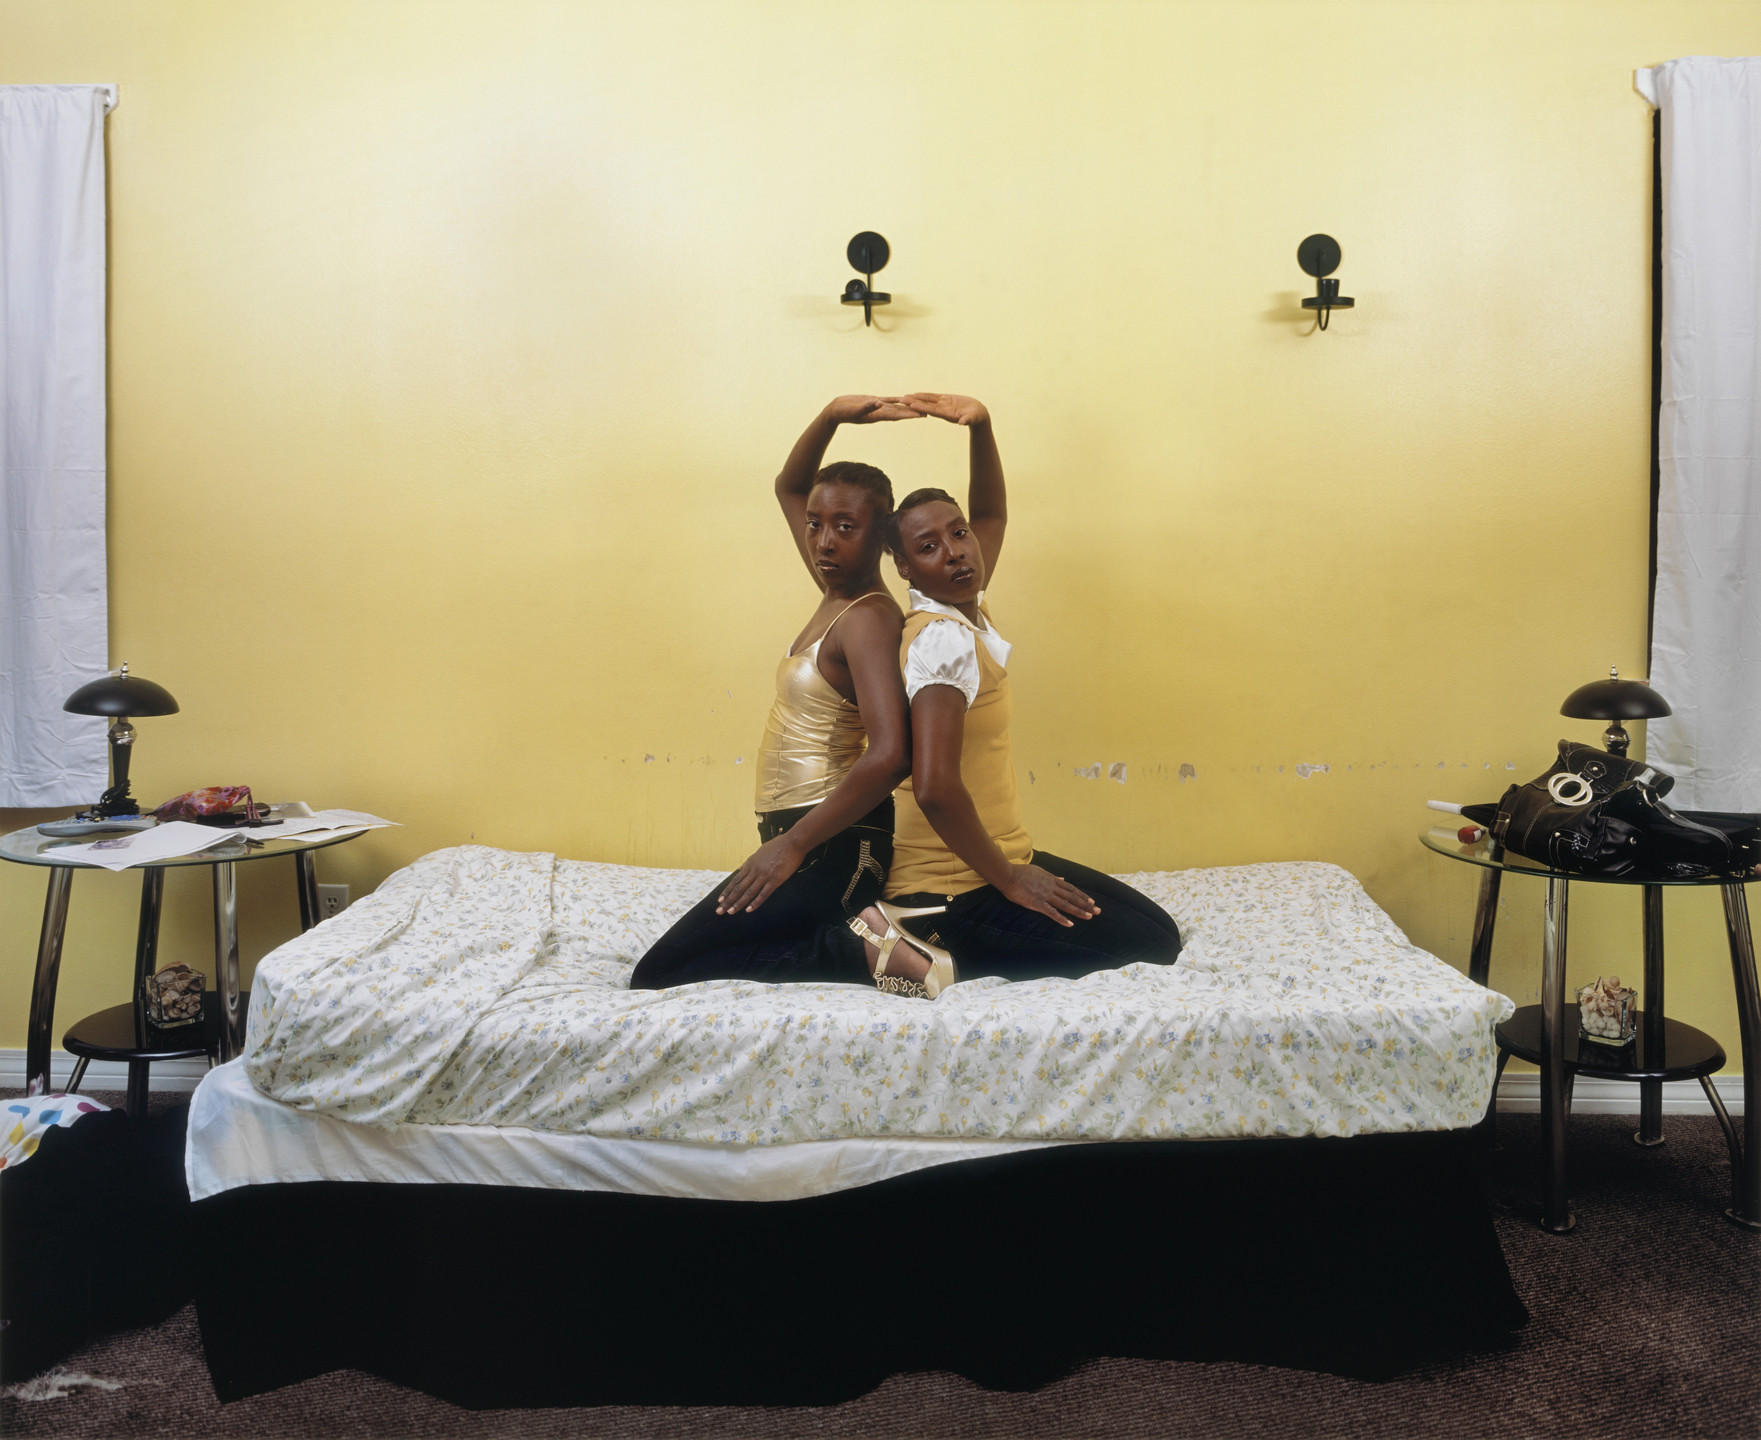 Deana Lawson. Roxie and Raquel, New Orleans, Louisiana. 2010